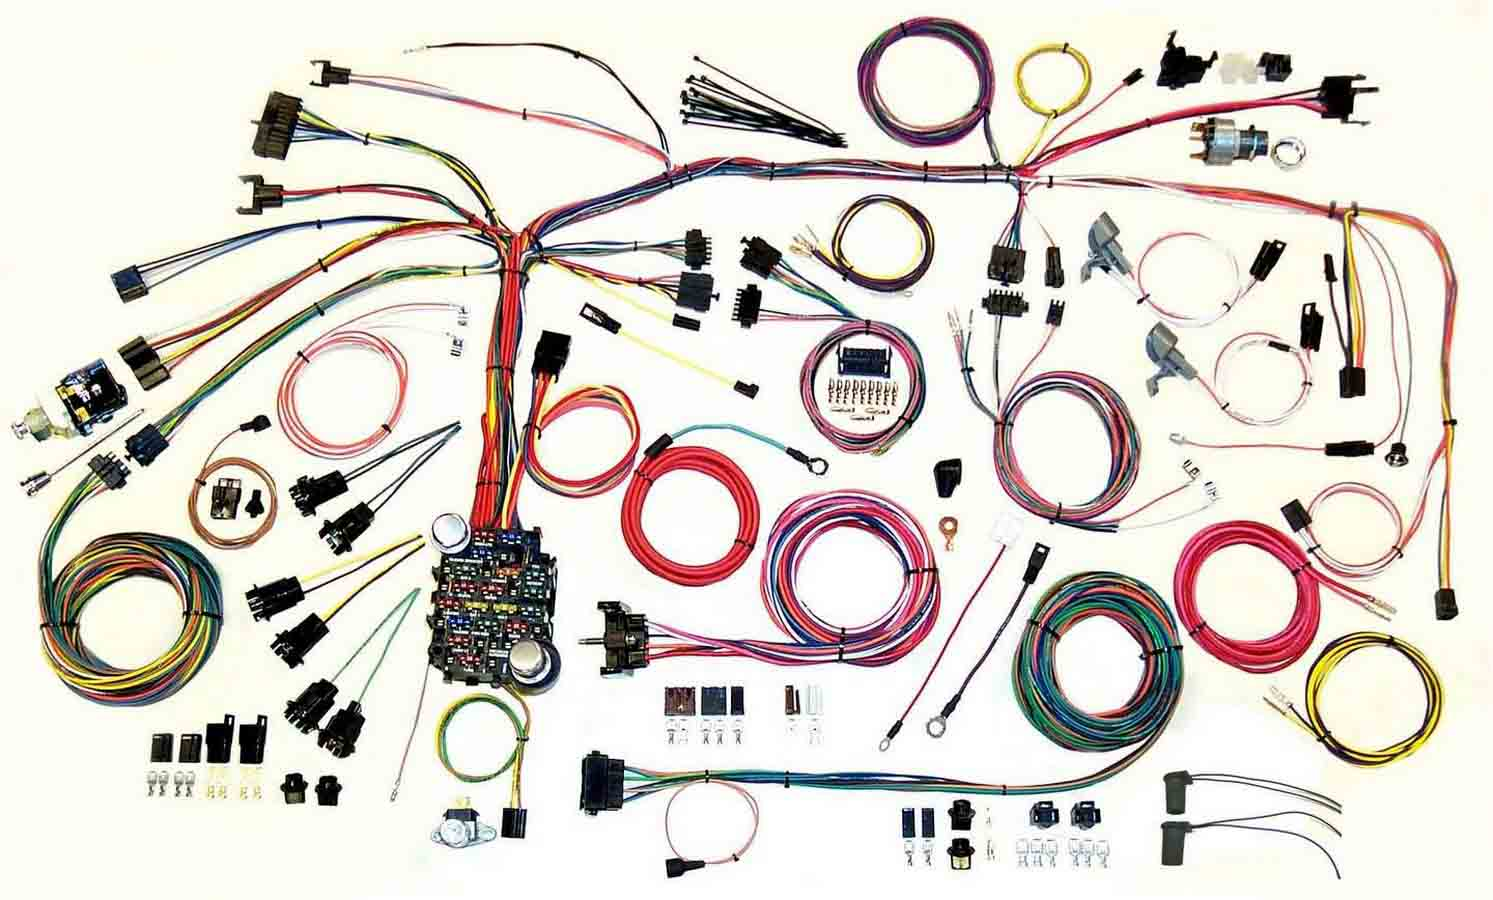 Shop For Full Wiring Harness Application Specific Show 67 68 Firebird Wire System